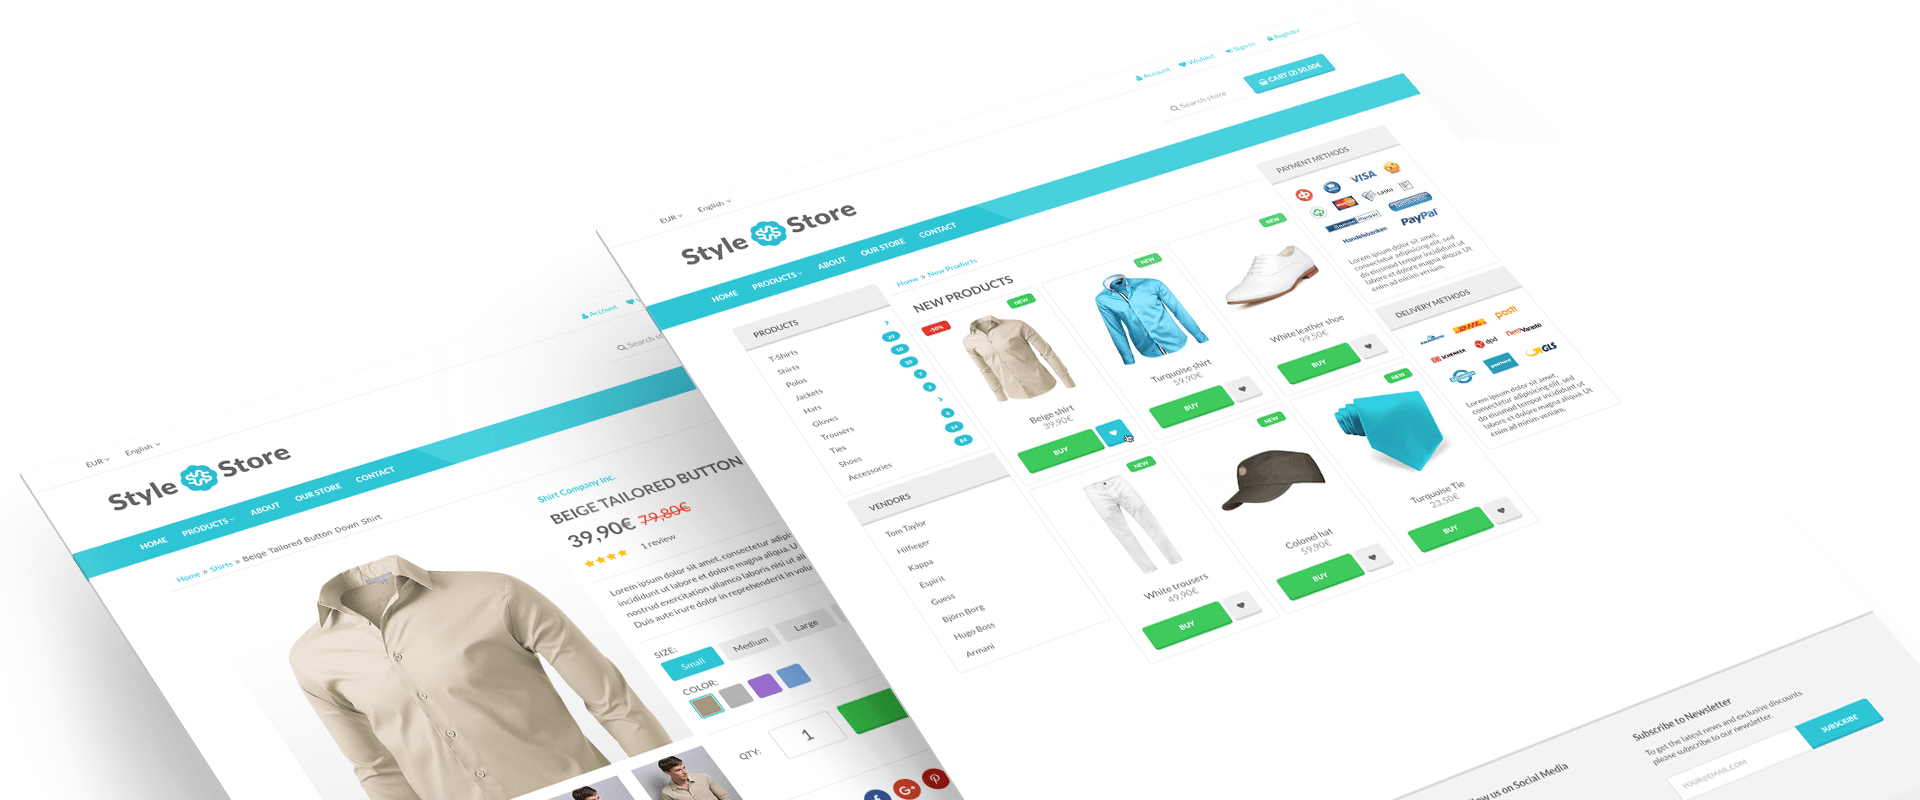 Style Store theme